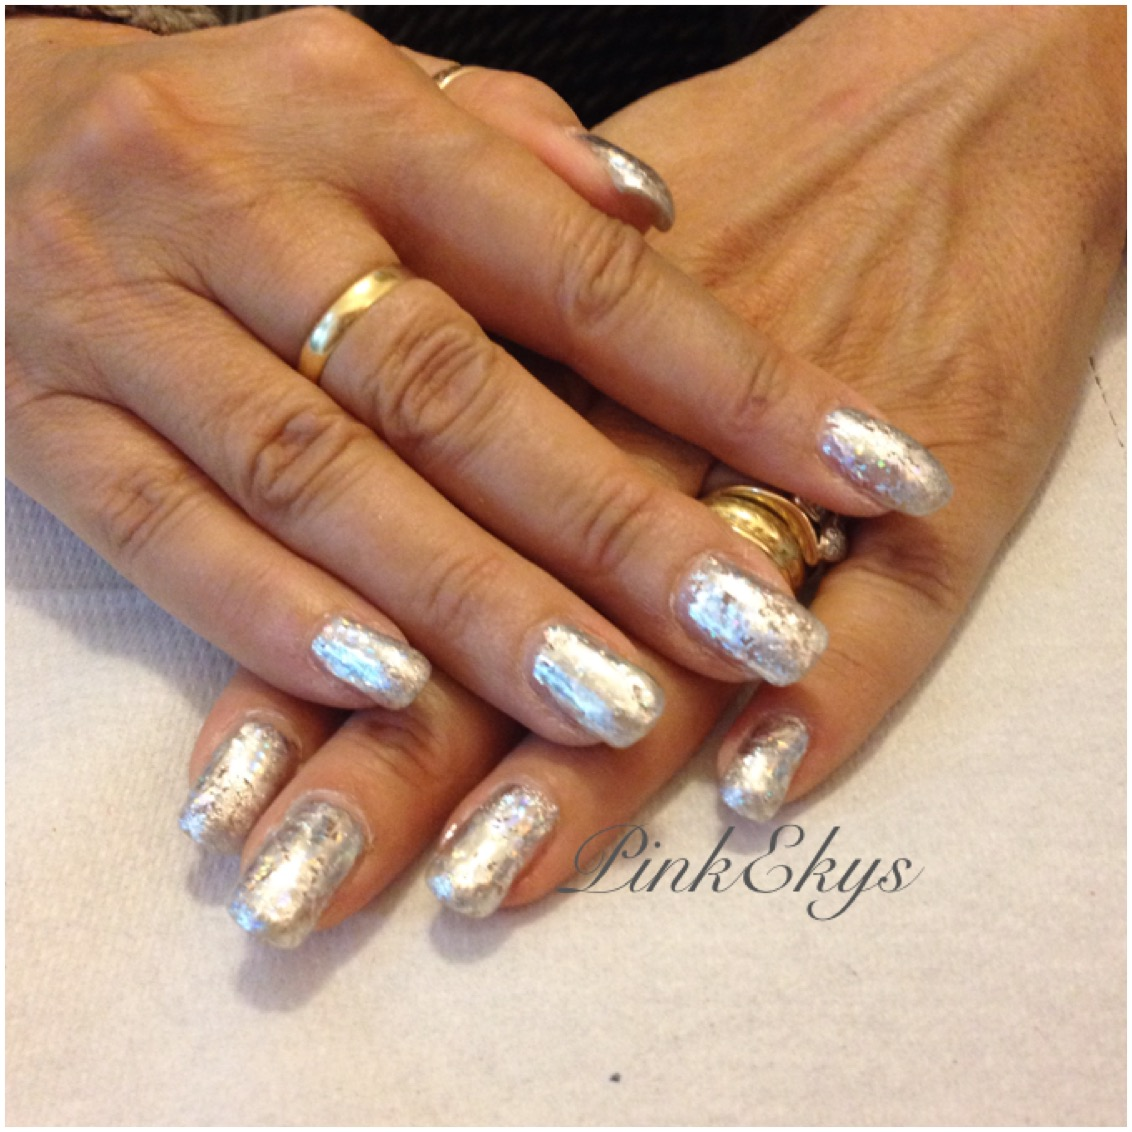 Amato Pinkekys : Unghie in gel: Silver Nails XG33